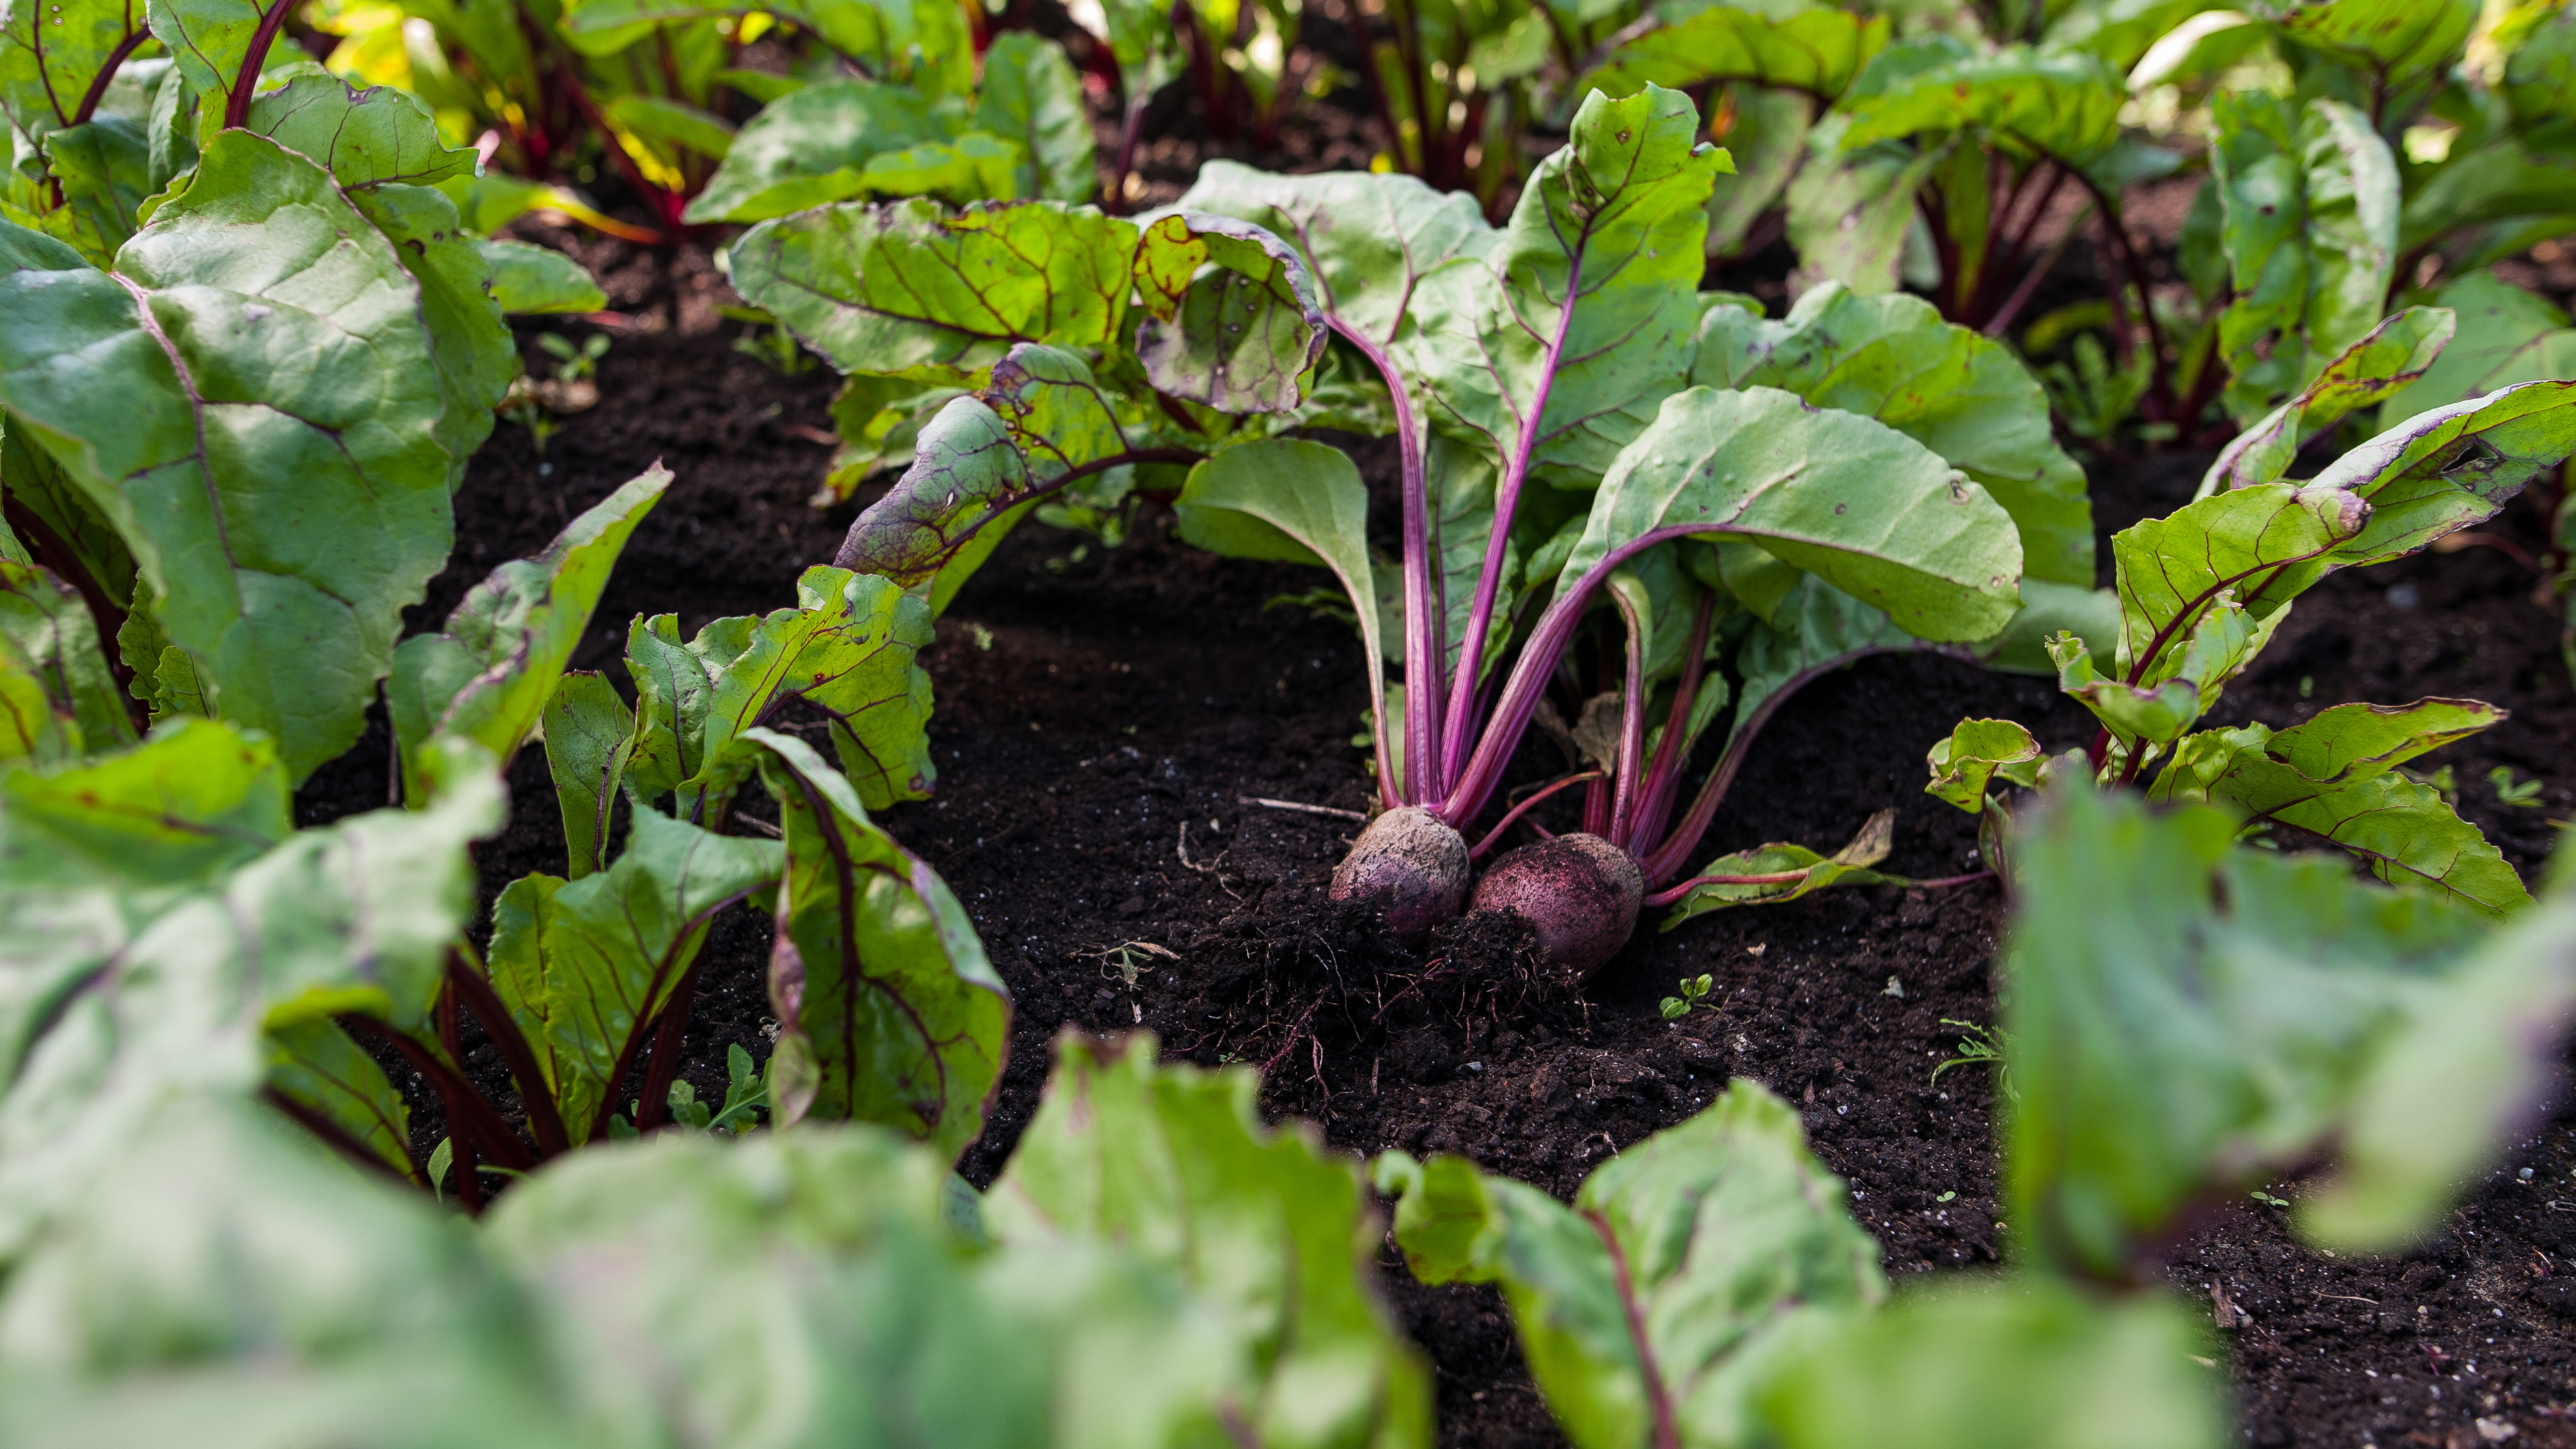 Country Magic Beets in field freshly harvested